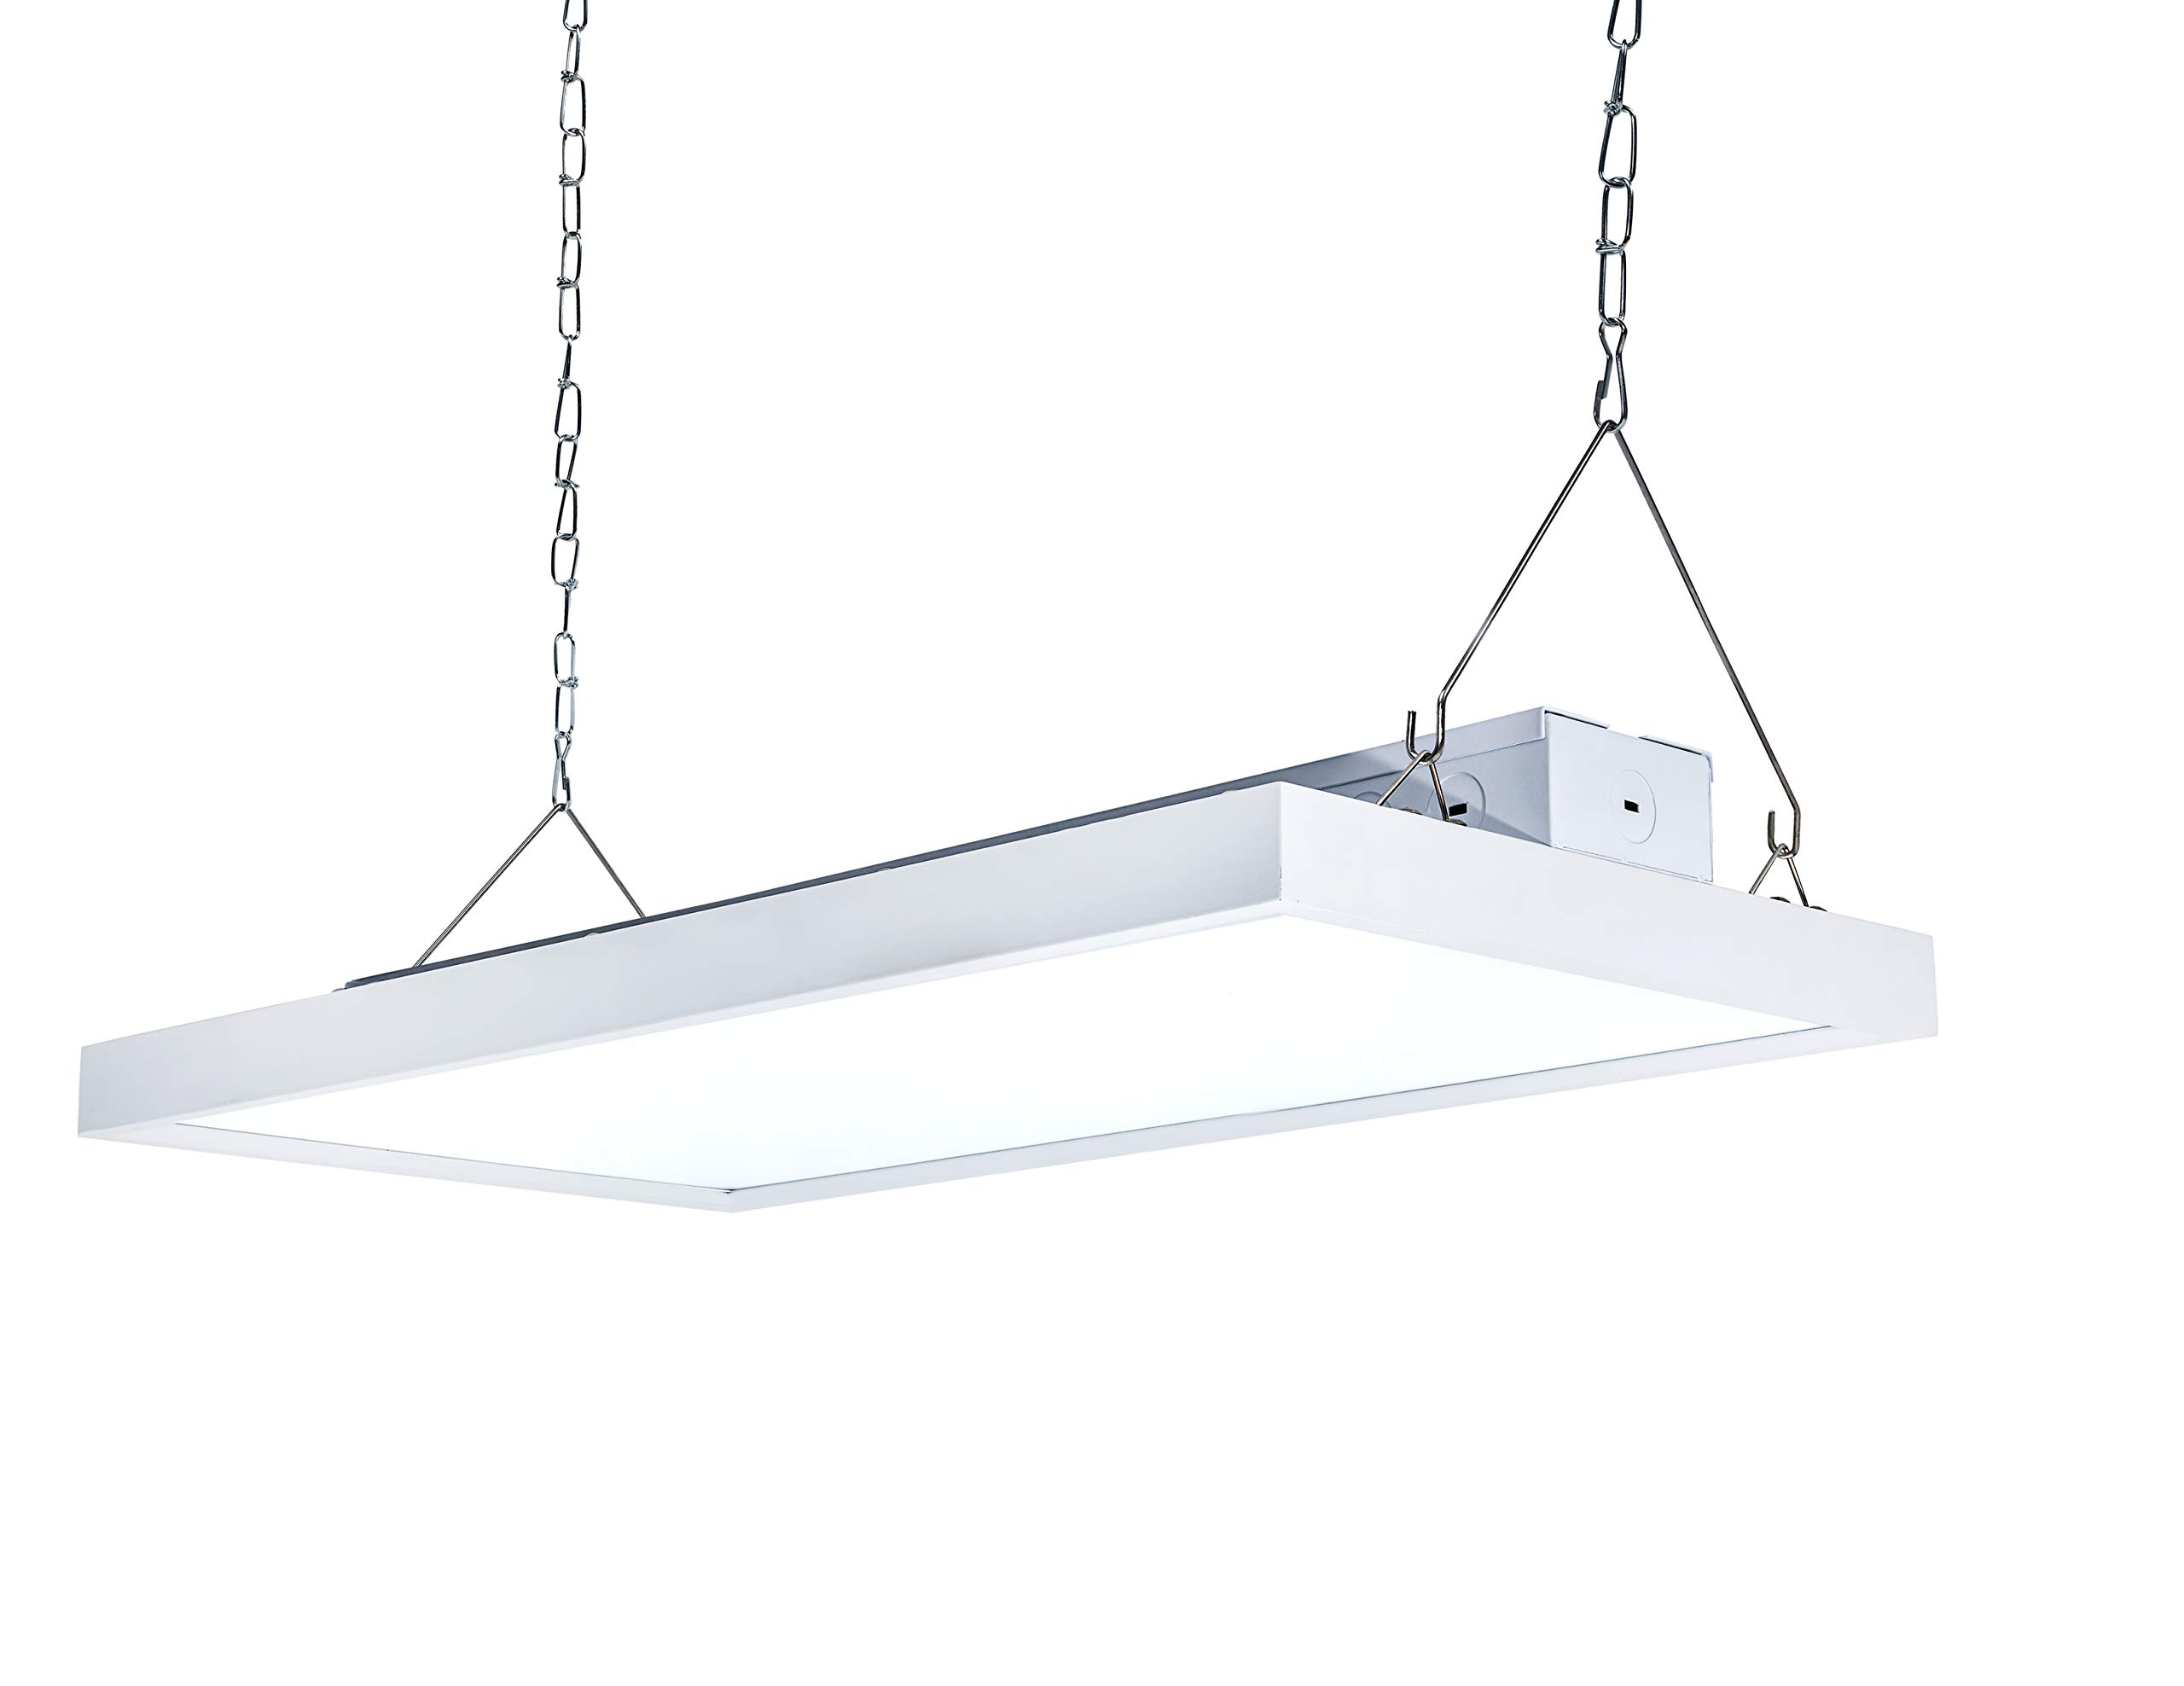 Parmida 2FT LED Linear High Bay Shop Light Fixture, 165W (700W MH/HID Equiv.), 21285lm, 0-10V Dimmable, UL & DLC 4.2, Commercial Industrial Warehouse Lighting, 5000K, Hanging Chain Included